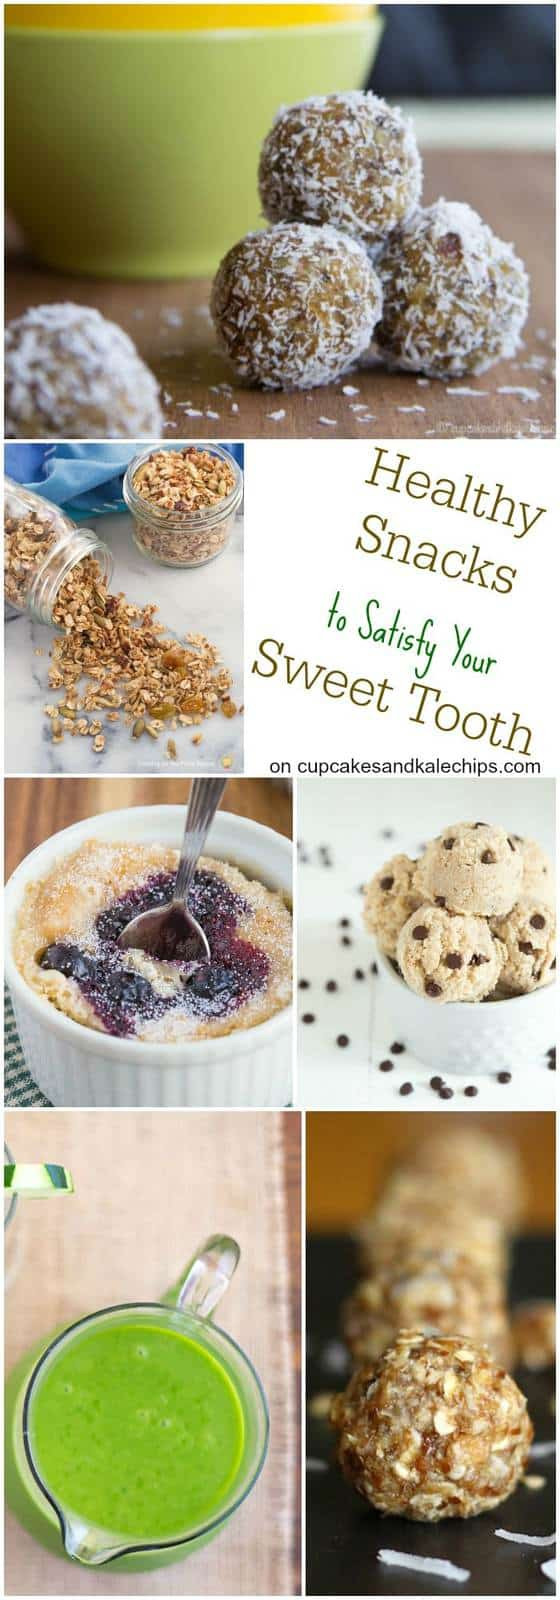 Healthy Snacks For Sweet Tooth  25 Healthy Snacks to Satisfy Your Sweet Tooth Cupcakes